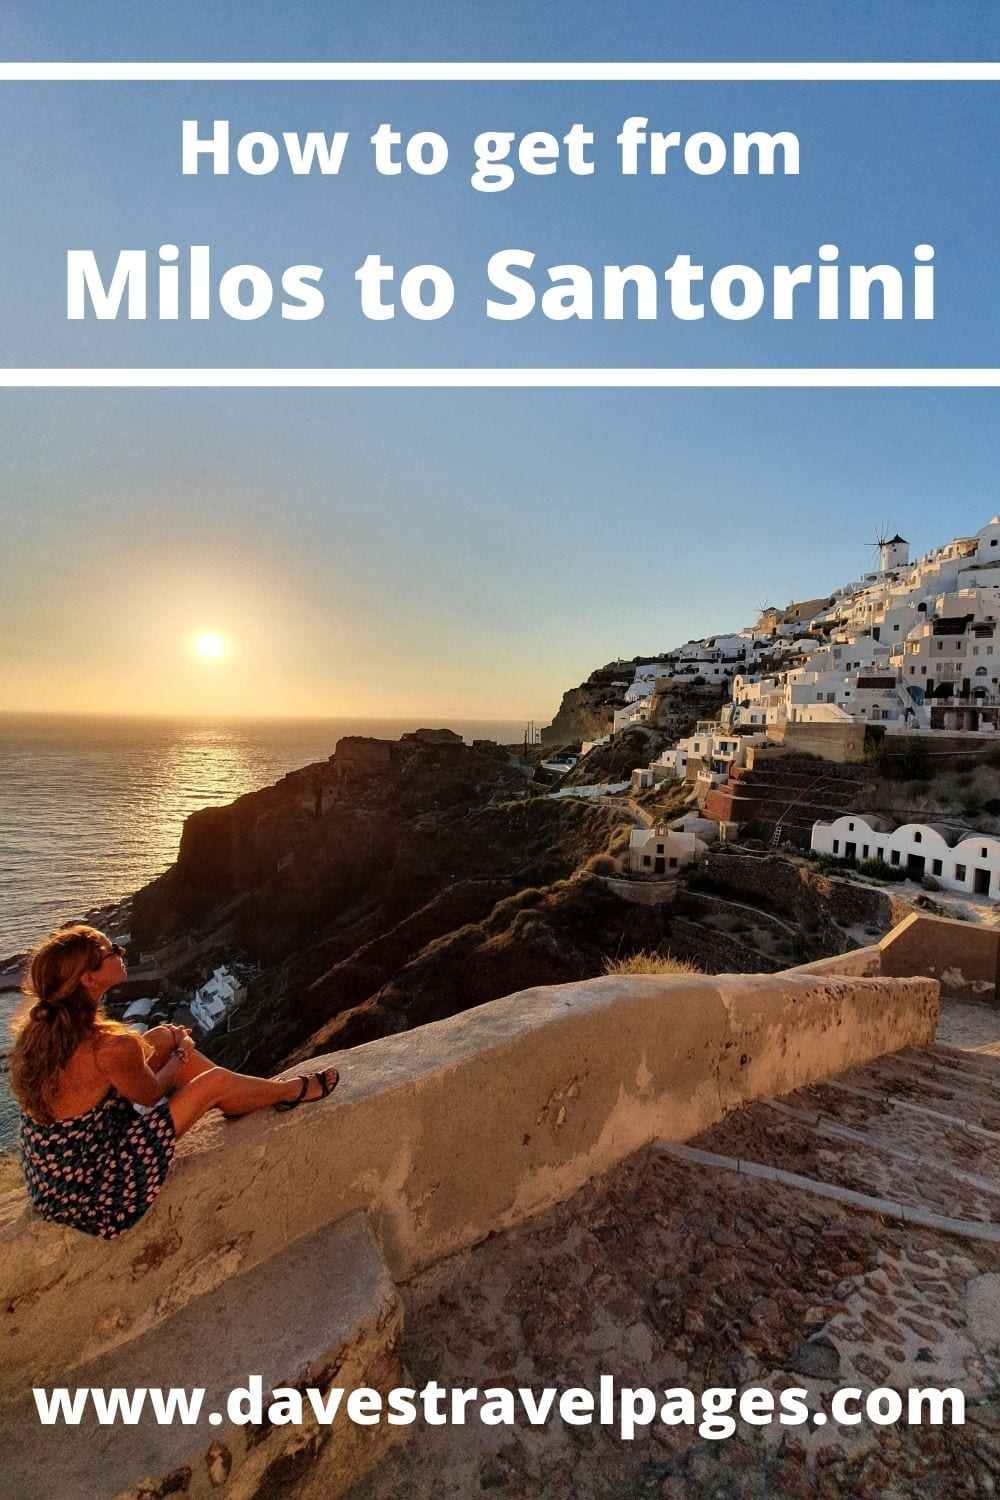 How to get from Milos to Santorini by ferry